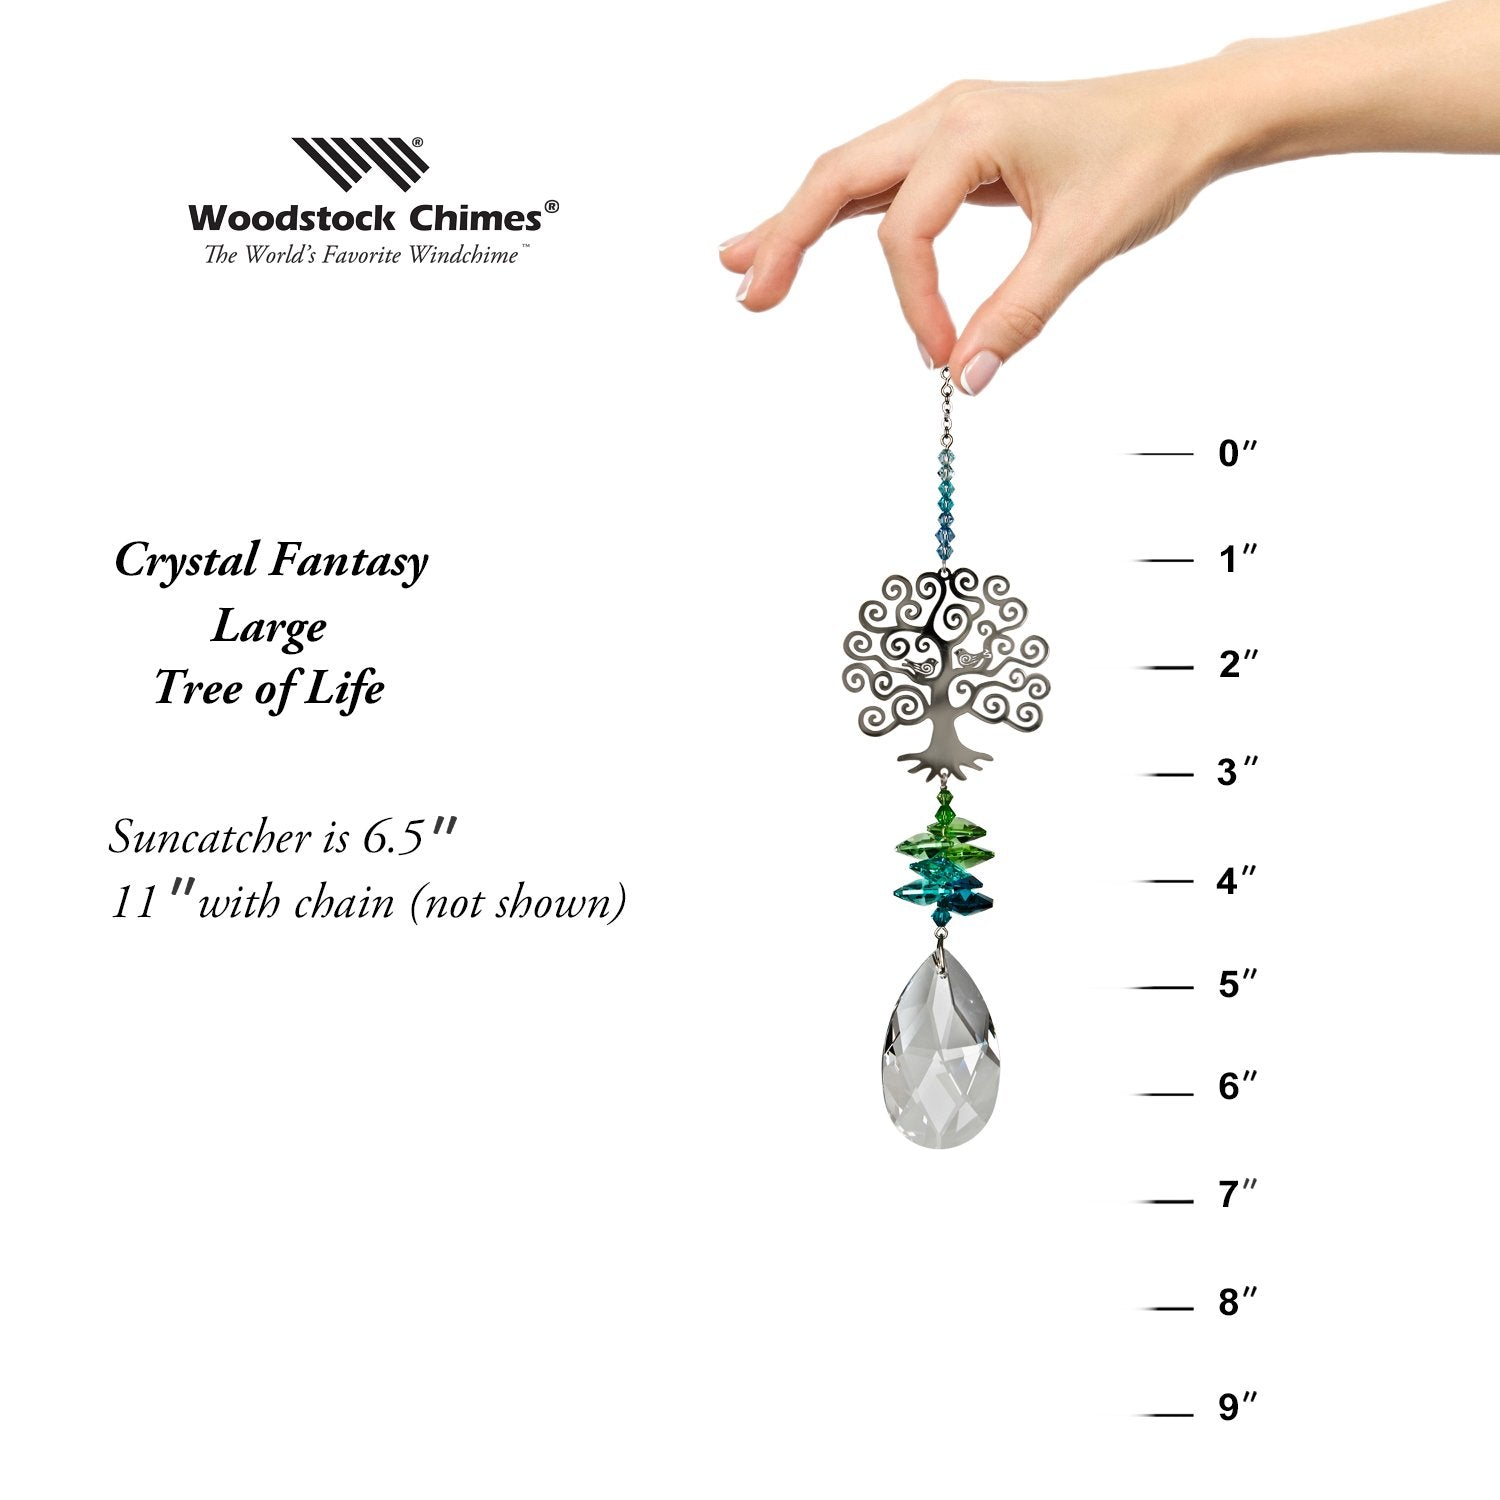 Crystal Fantasy Suncatcher - Large, Tree of Life proportion image